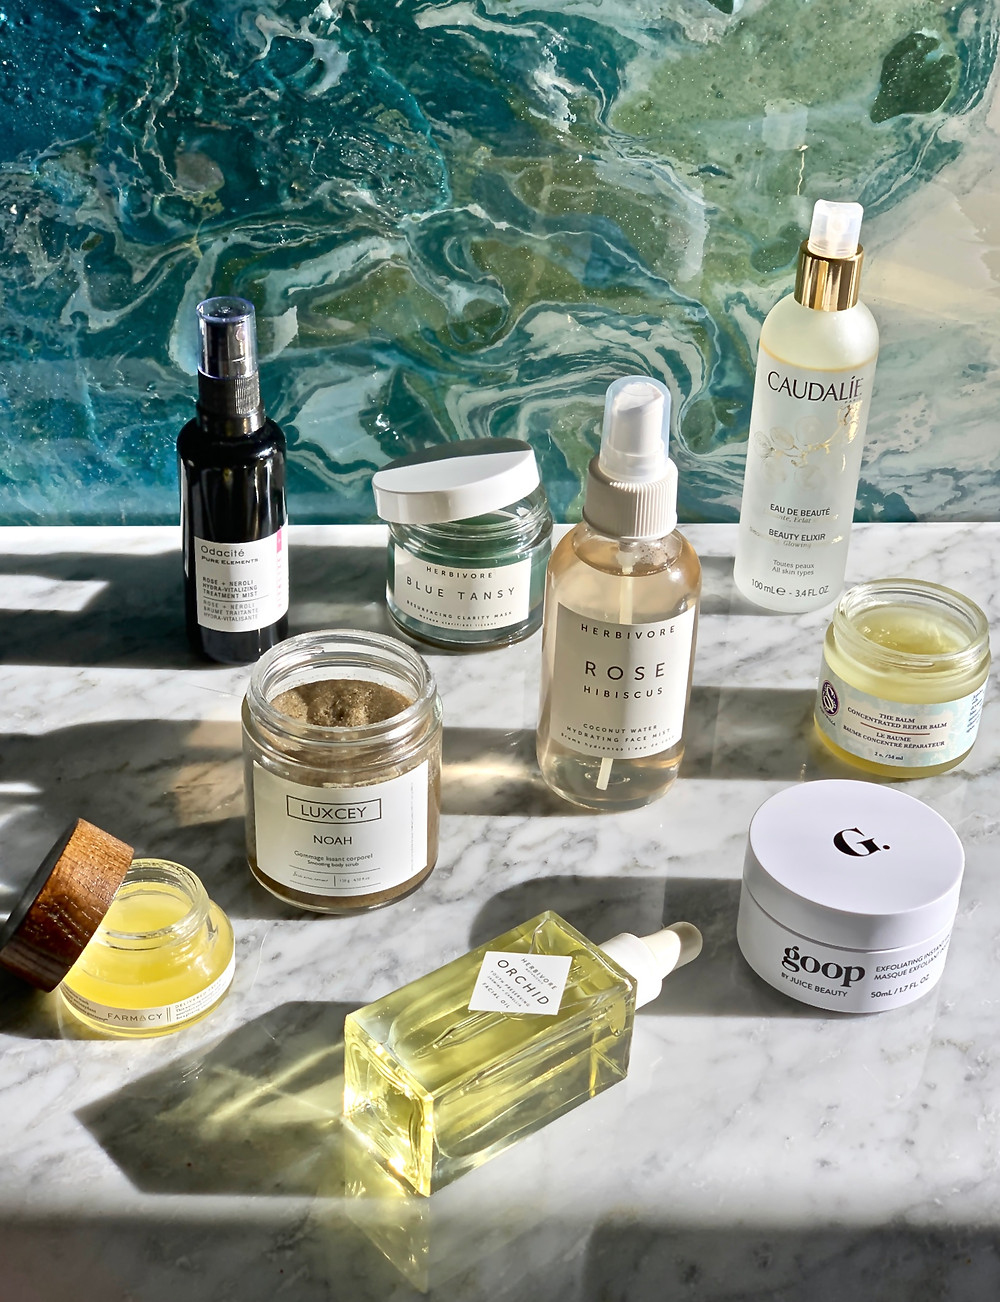 Natural Beauty, Clean Beauty, The Beauty and Wellness Edit, Caudalie, Herbivore, Goop, Luxcey, Farmacy, Odacite, Editor's Picks The Golden Edition, Cruelty Free Beauty, Skincare